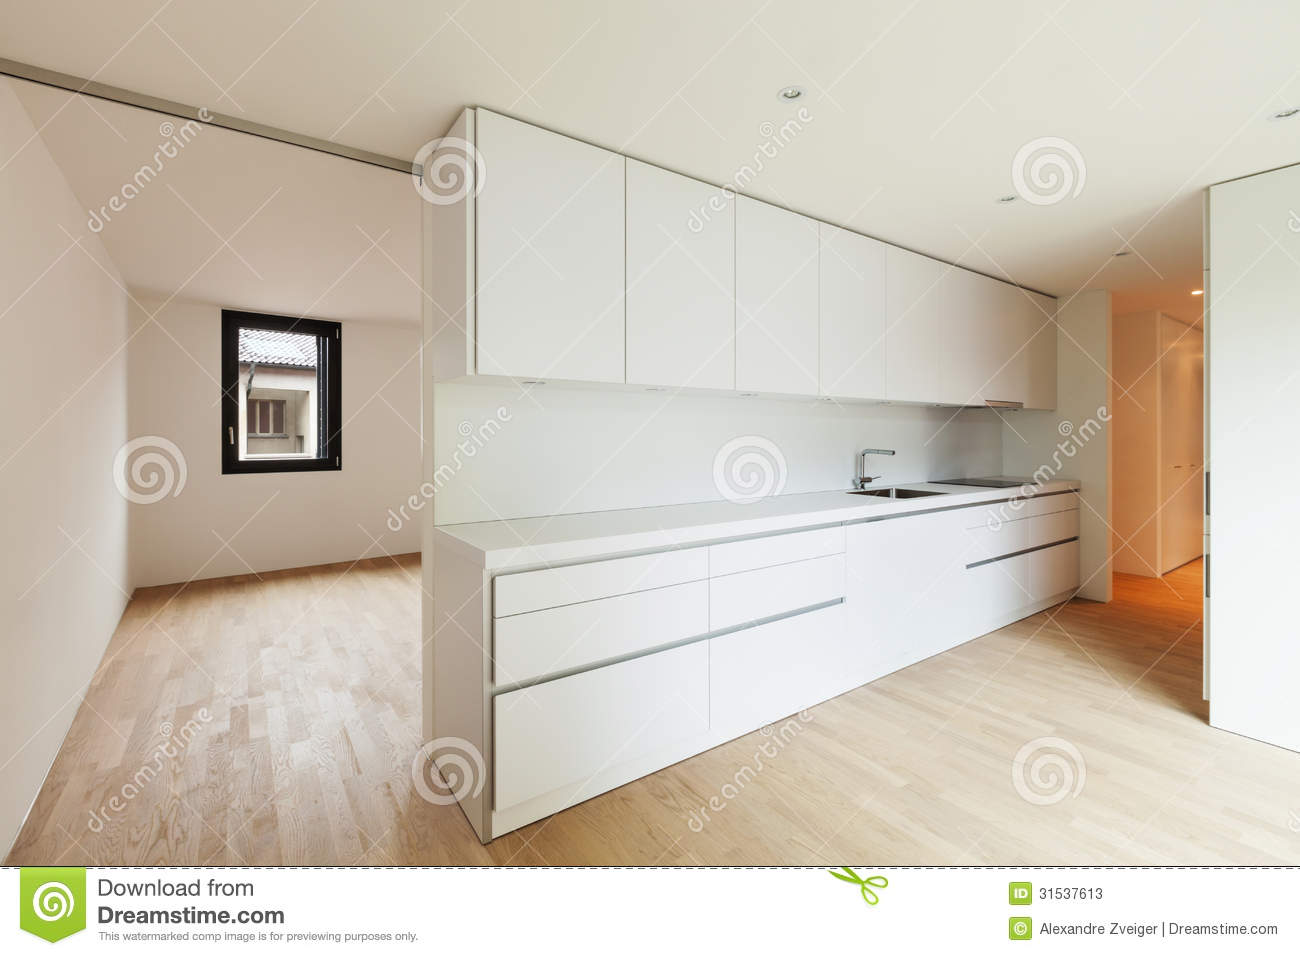 Modern White Kitchen Stock Photos - Image: 31537613